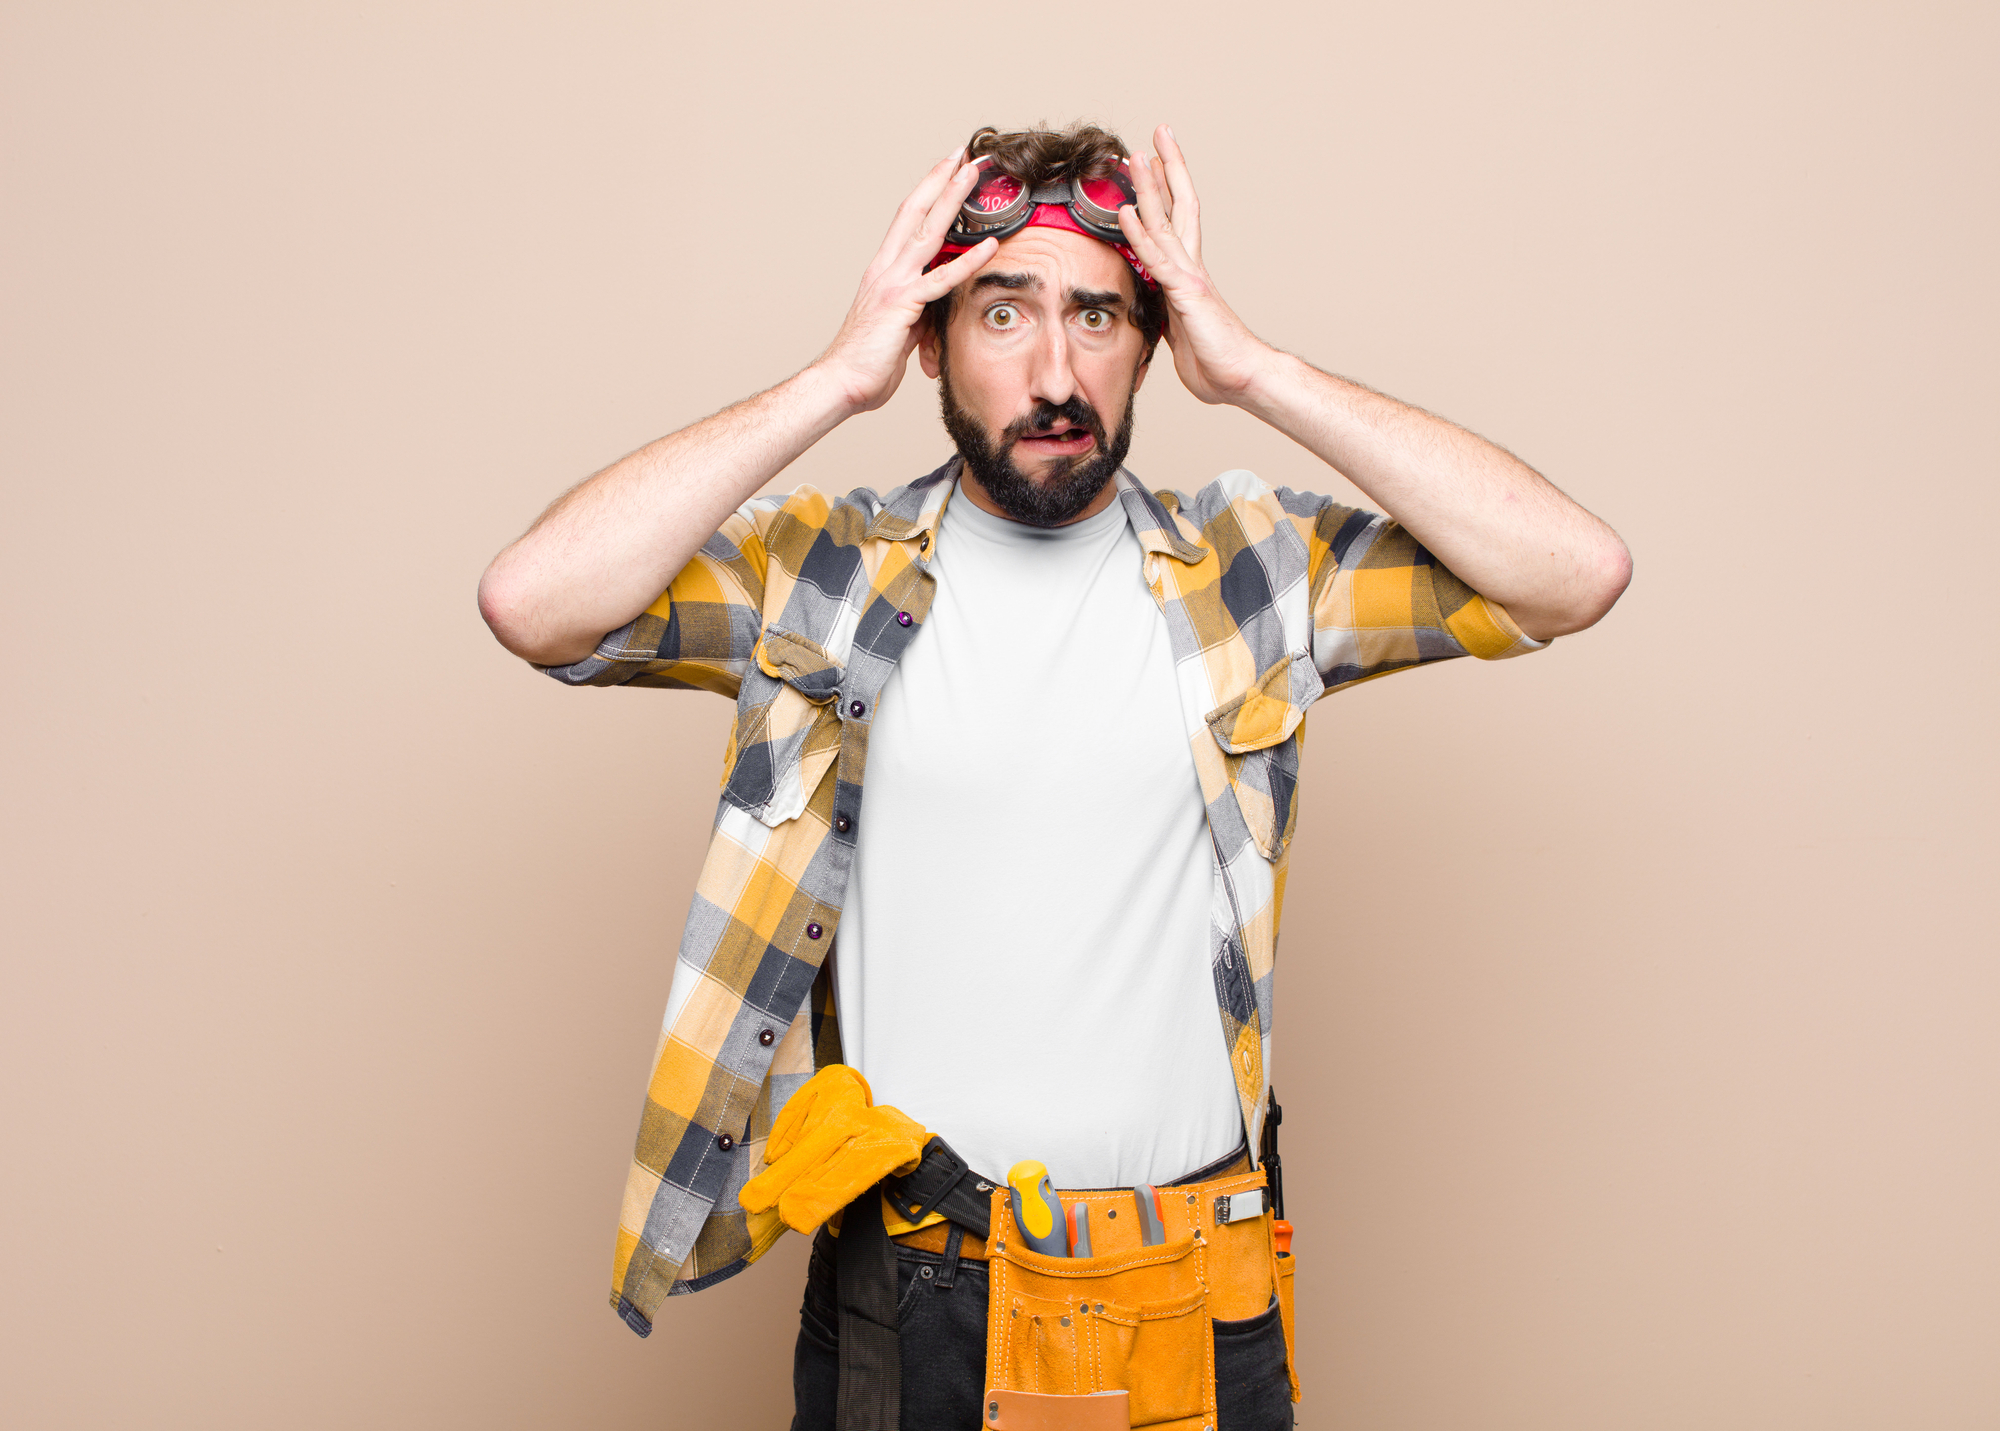 Young housekeeper man feeling horrified and shocked, raising hands to head and panicking at a mistake against flat wall